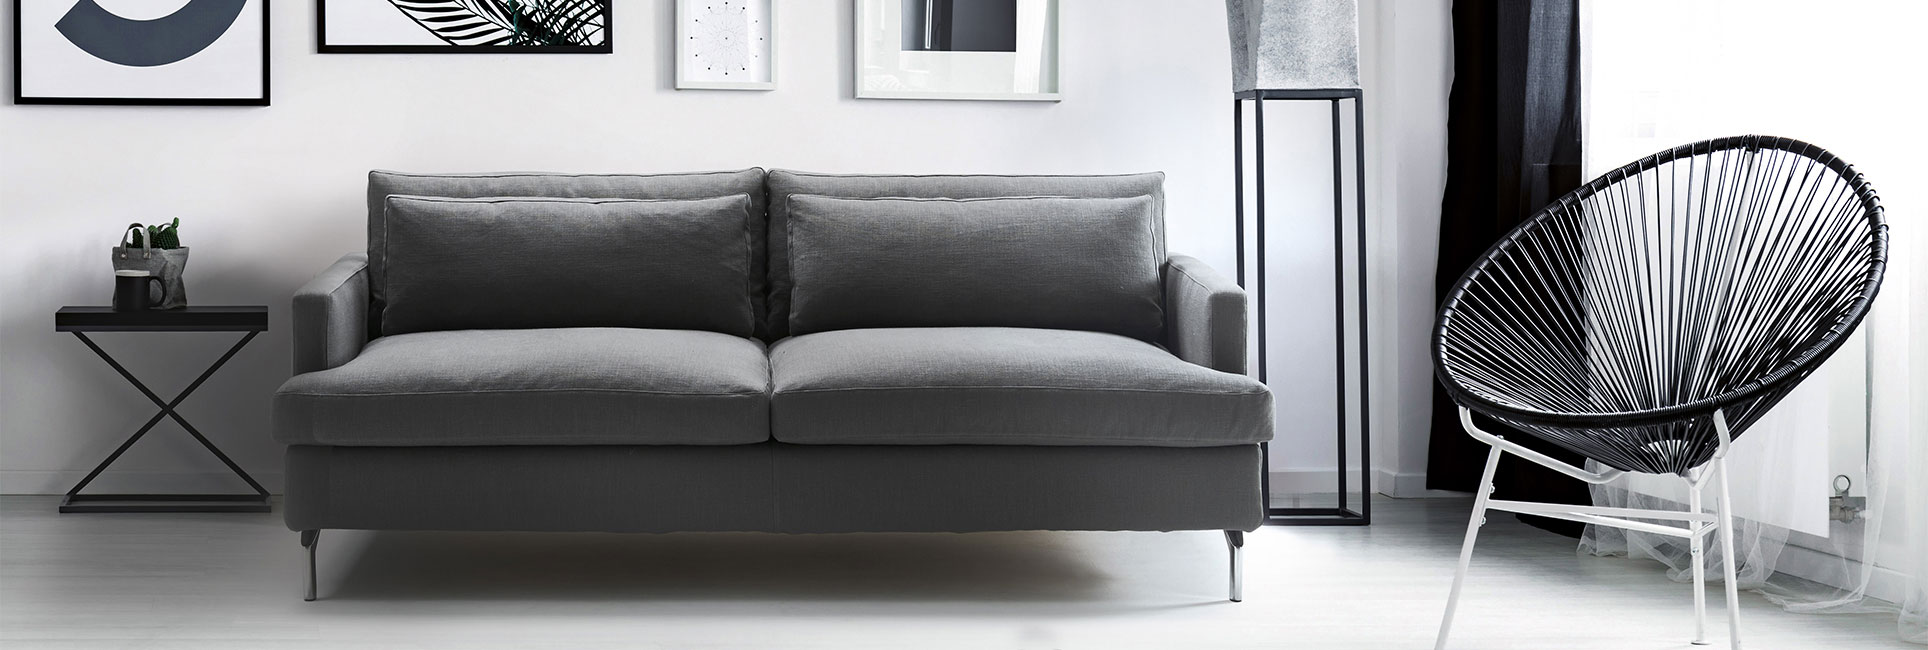 Dave 2 or 3 seat sofa with double bed